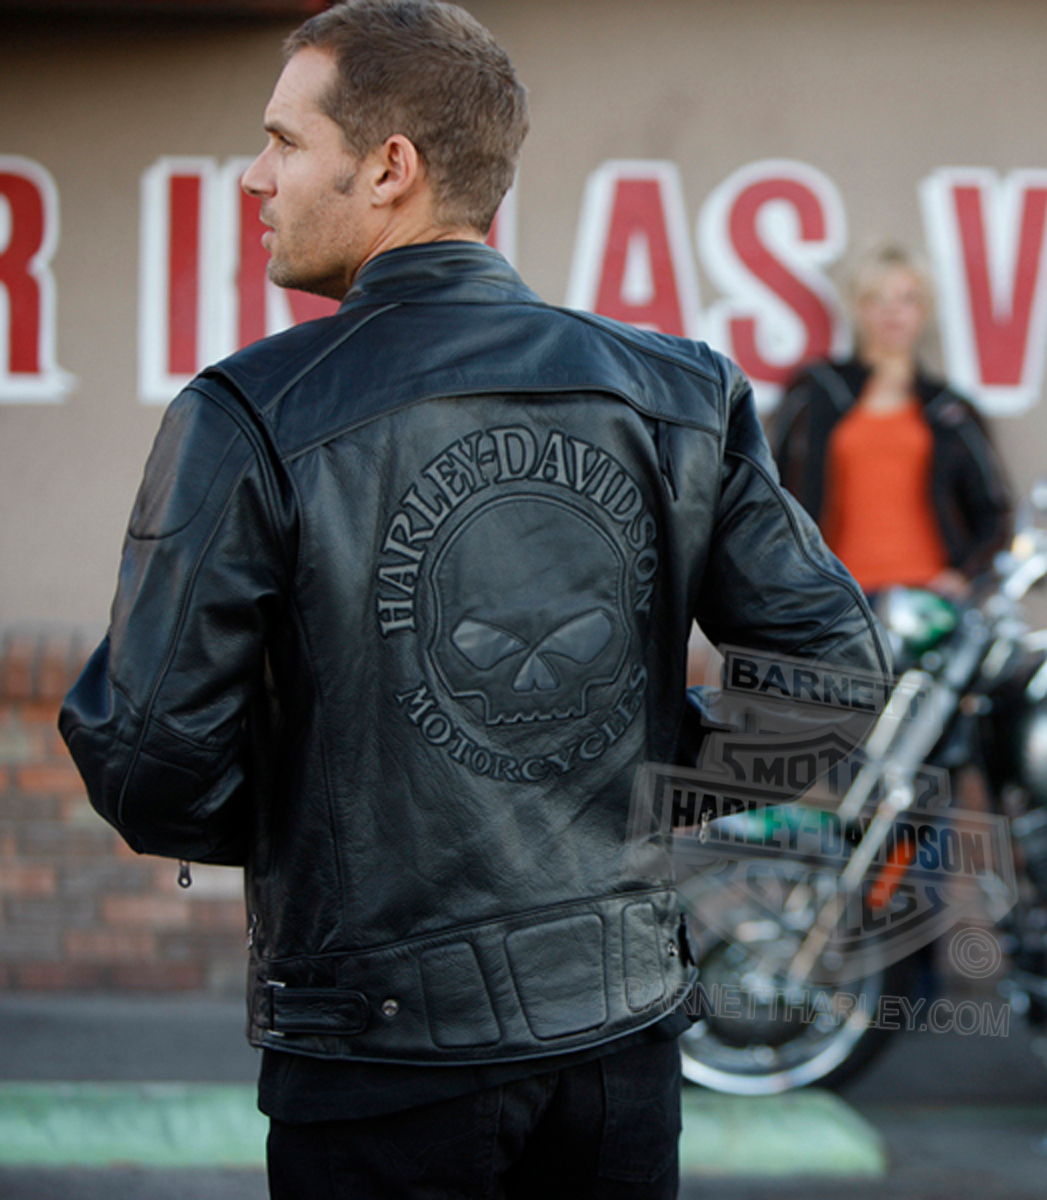 what is distinctive competence for harley davidson